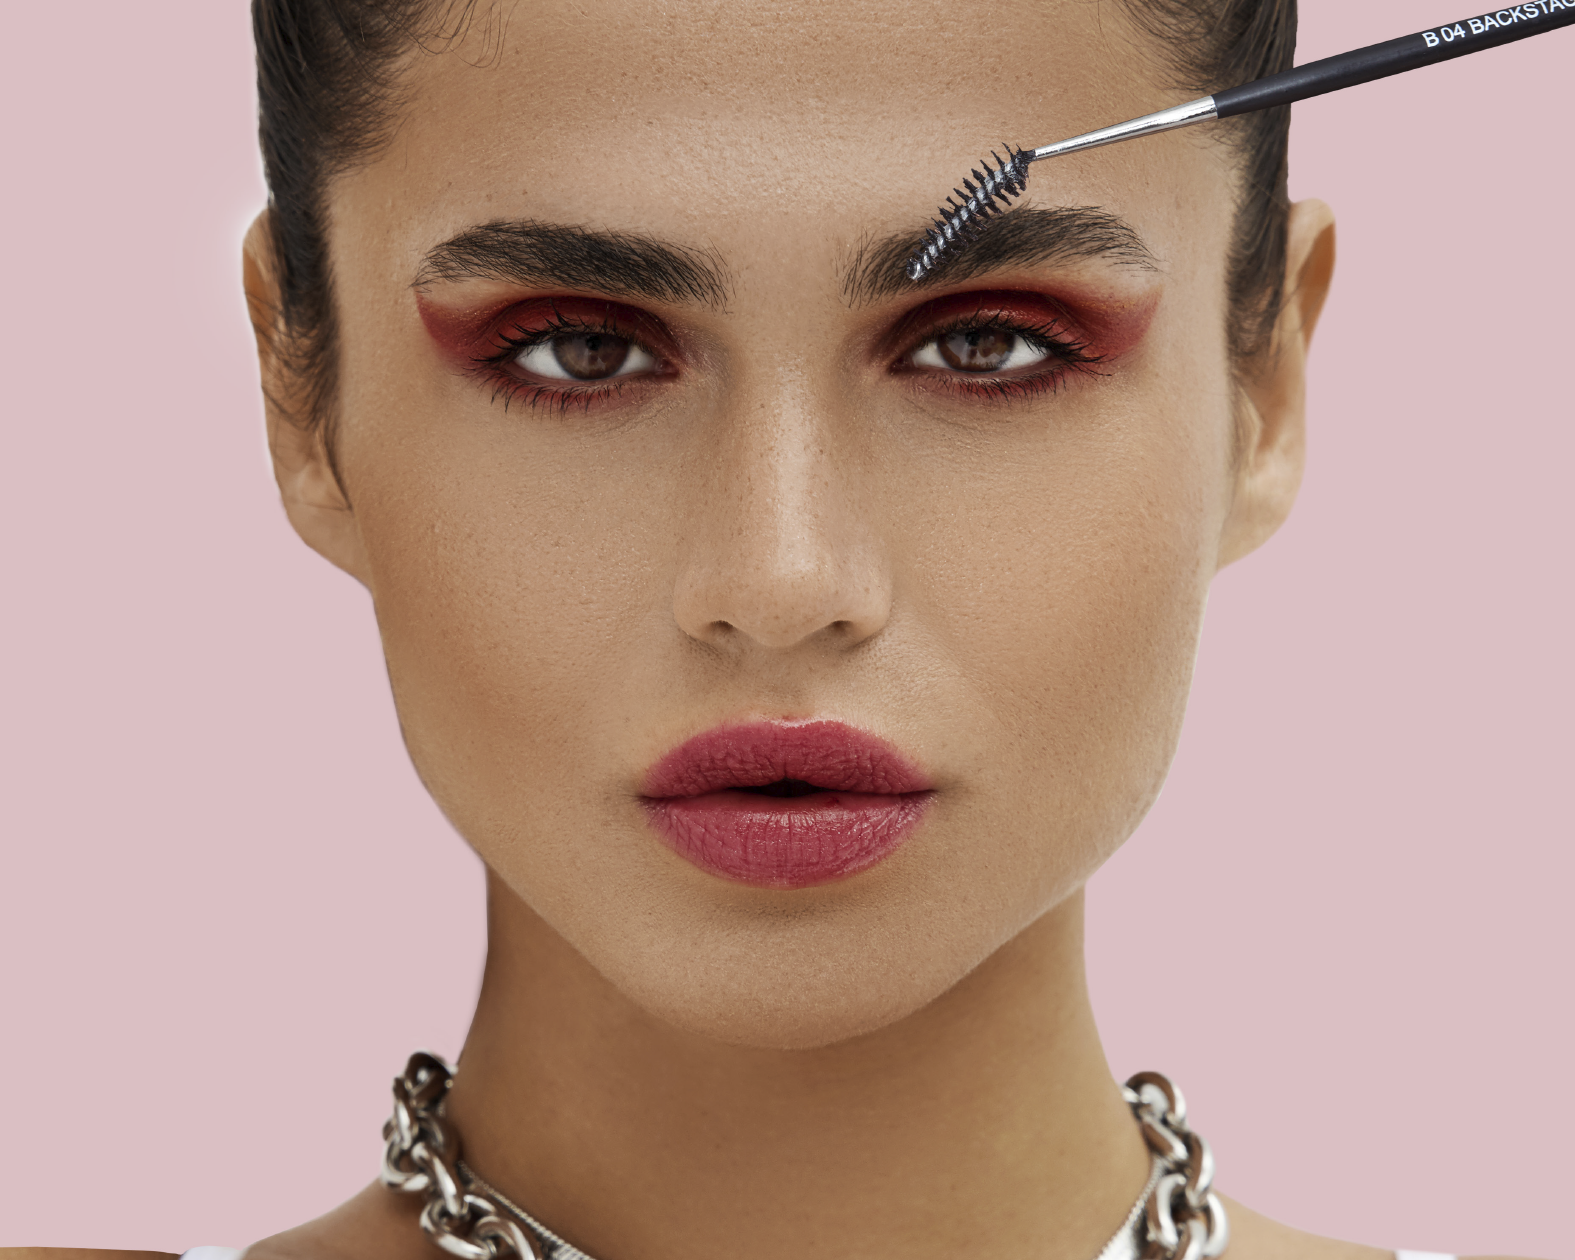 Brow-Wow - Brow Styling Guide